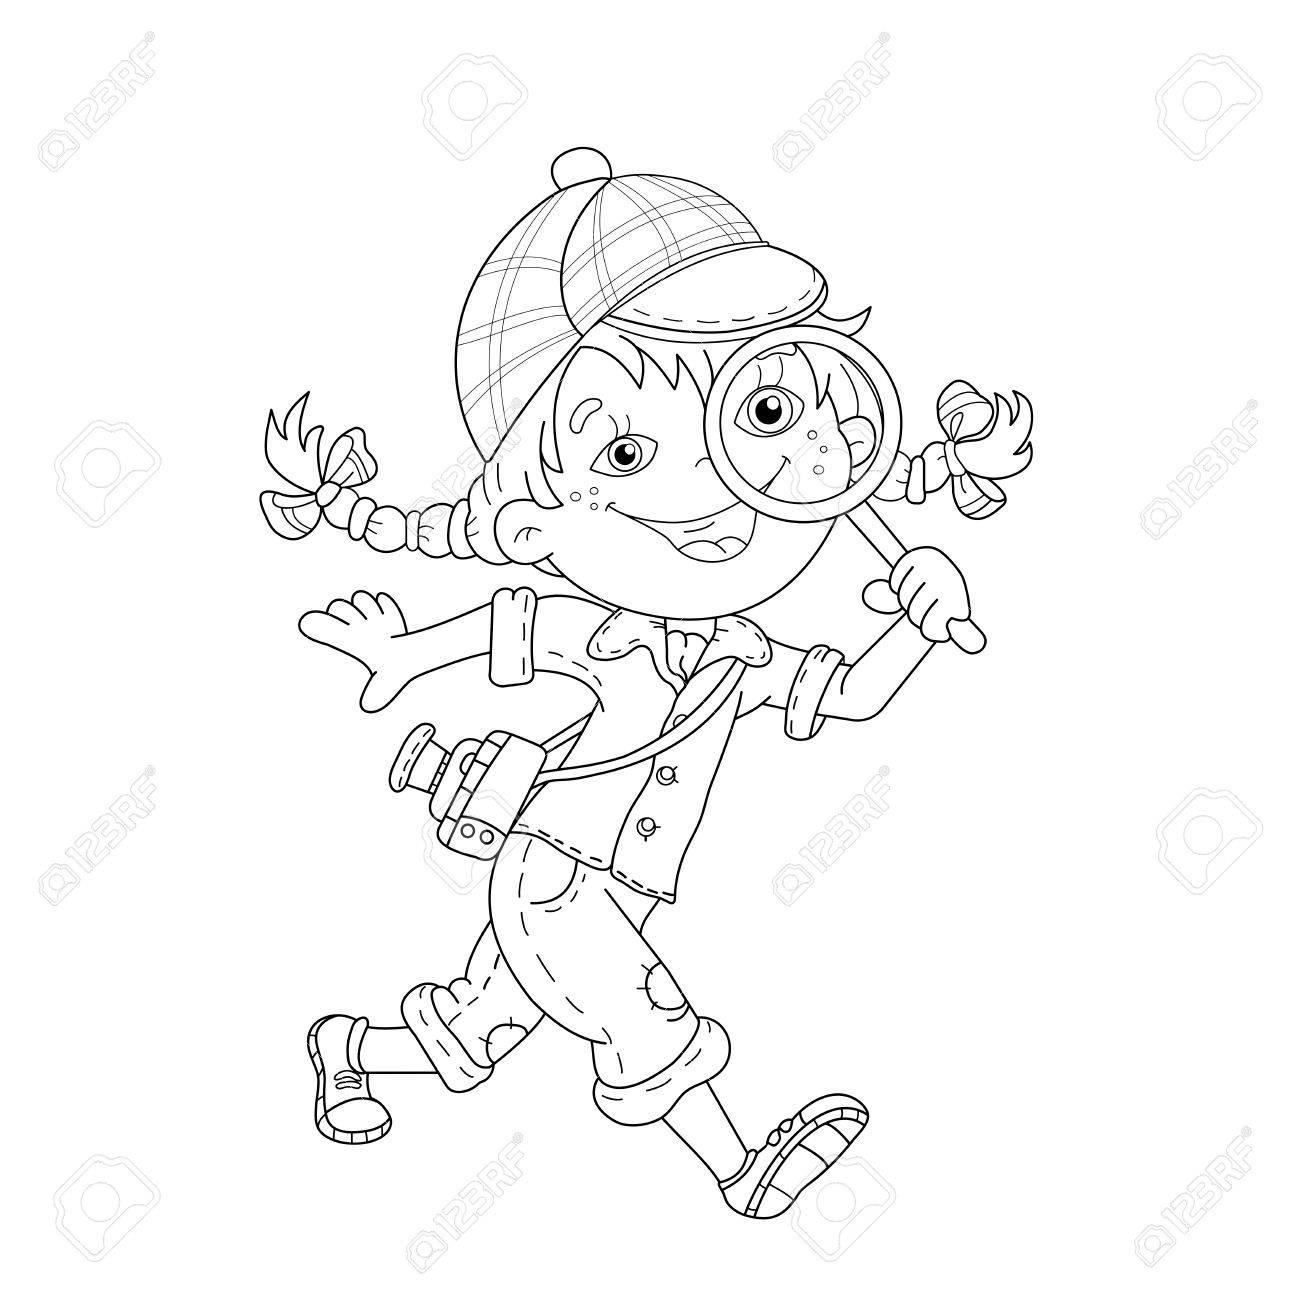 coloring page outline of cartoon detective with loupe